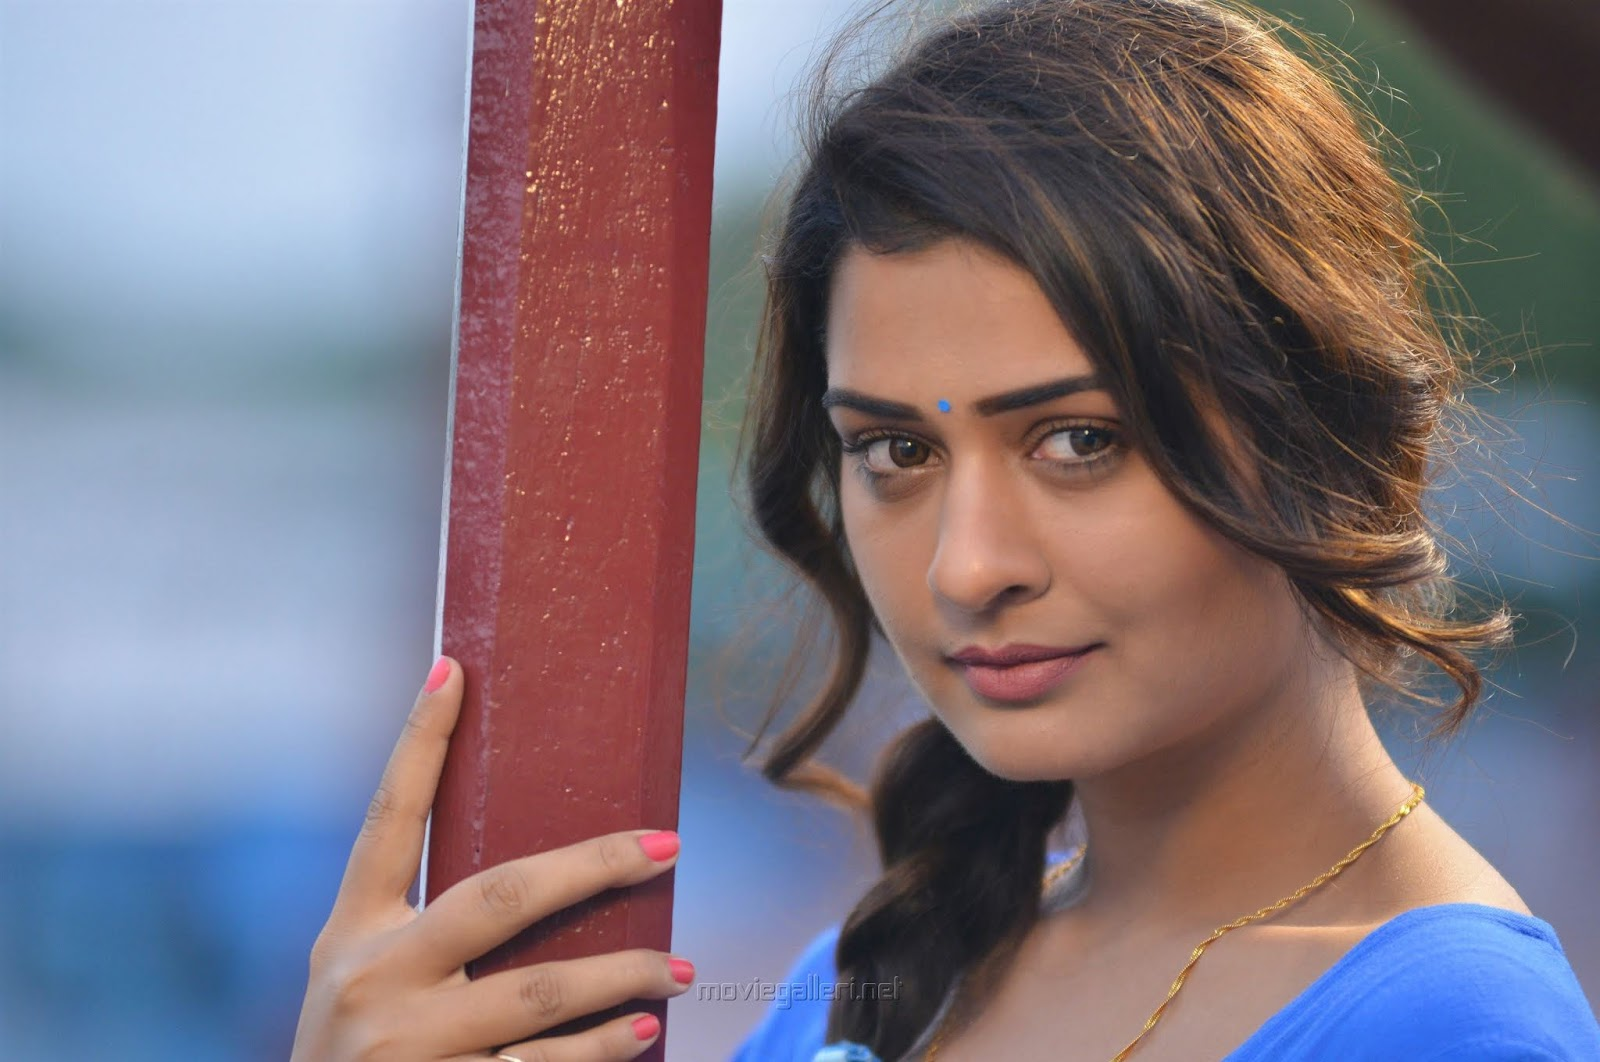 Rx 100 Movie Wallpapers Hd | Anime Wallpaper